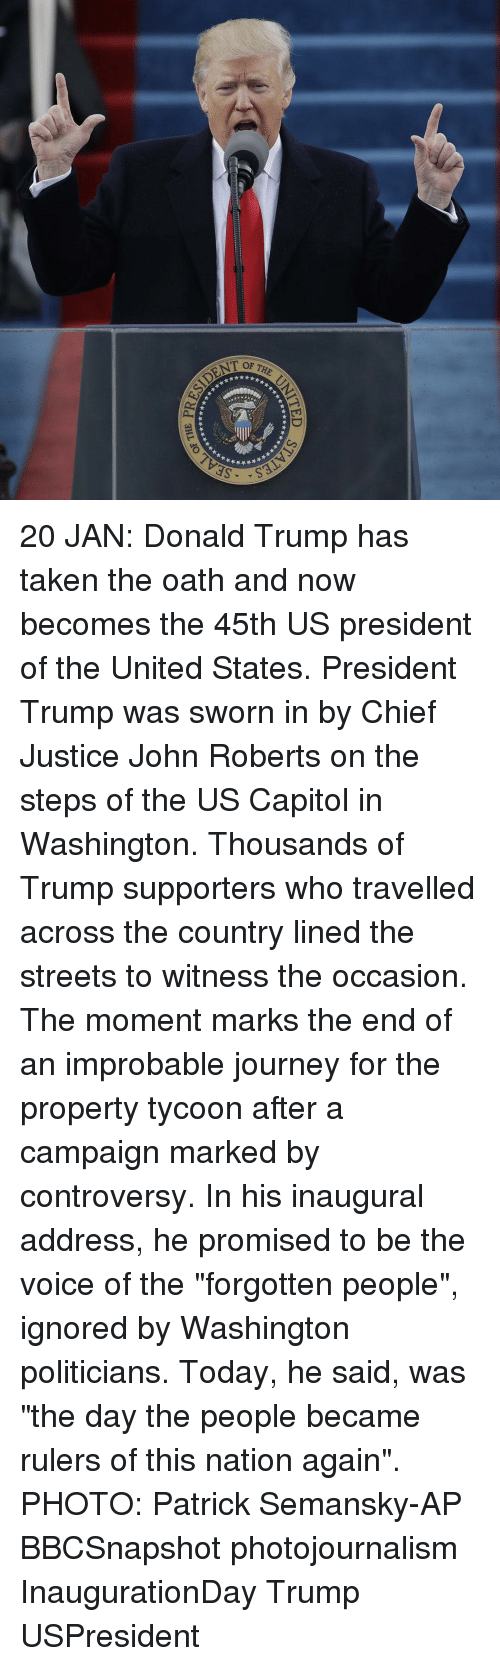 """Trump Support: OF THE  *长幕¥ *  부부부부  SEL  UNITE  *★★★★뇻  S  N  ★★★长**  d 3HL3Or\ 20 JAN: Donald Trump has taken the oath and now becomes the 45th US president of the United States. President Trump was sworn in by Chief Justice John Roberts on the steps of the US Capitol in Washington. Thousands of Trump supporters who travelled across the country lined the streets to witness the occasion. The moment marks the end of an improbable journey for the property tycoon after a campaign marked by controversy. In his inaugural address, he promised to be the voice of the """"forgotten people"""", ignored by Washington politicians. Today, he said, was """"the day the people became rulers of this nation again"""". PHOTO: Patrick Semansky-AP BBCSnapshot photojournalism InaugurationDay Trump USPresident"""